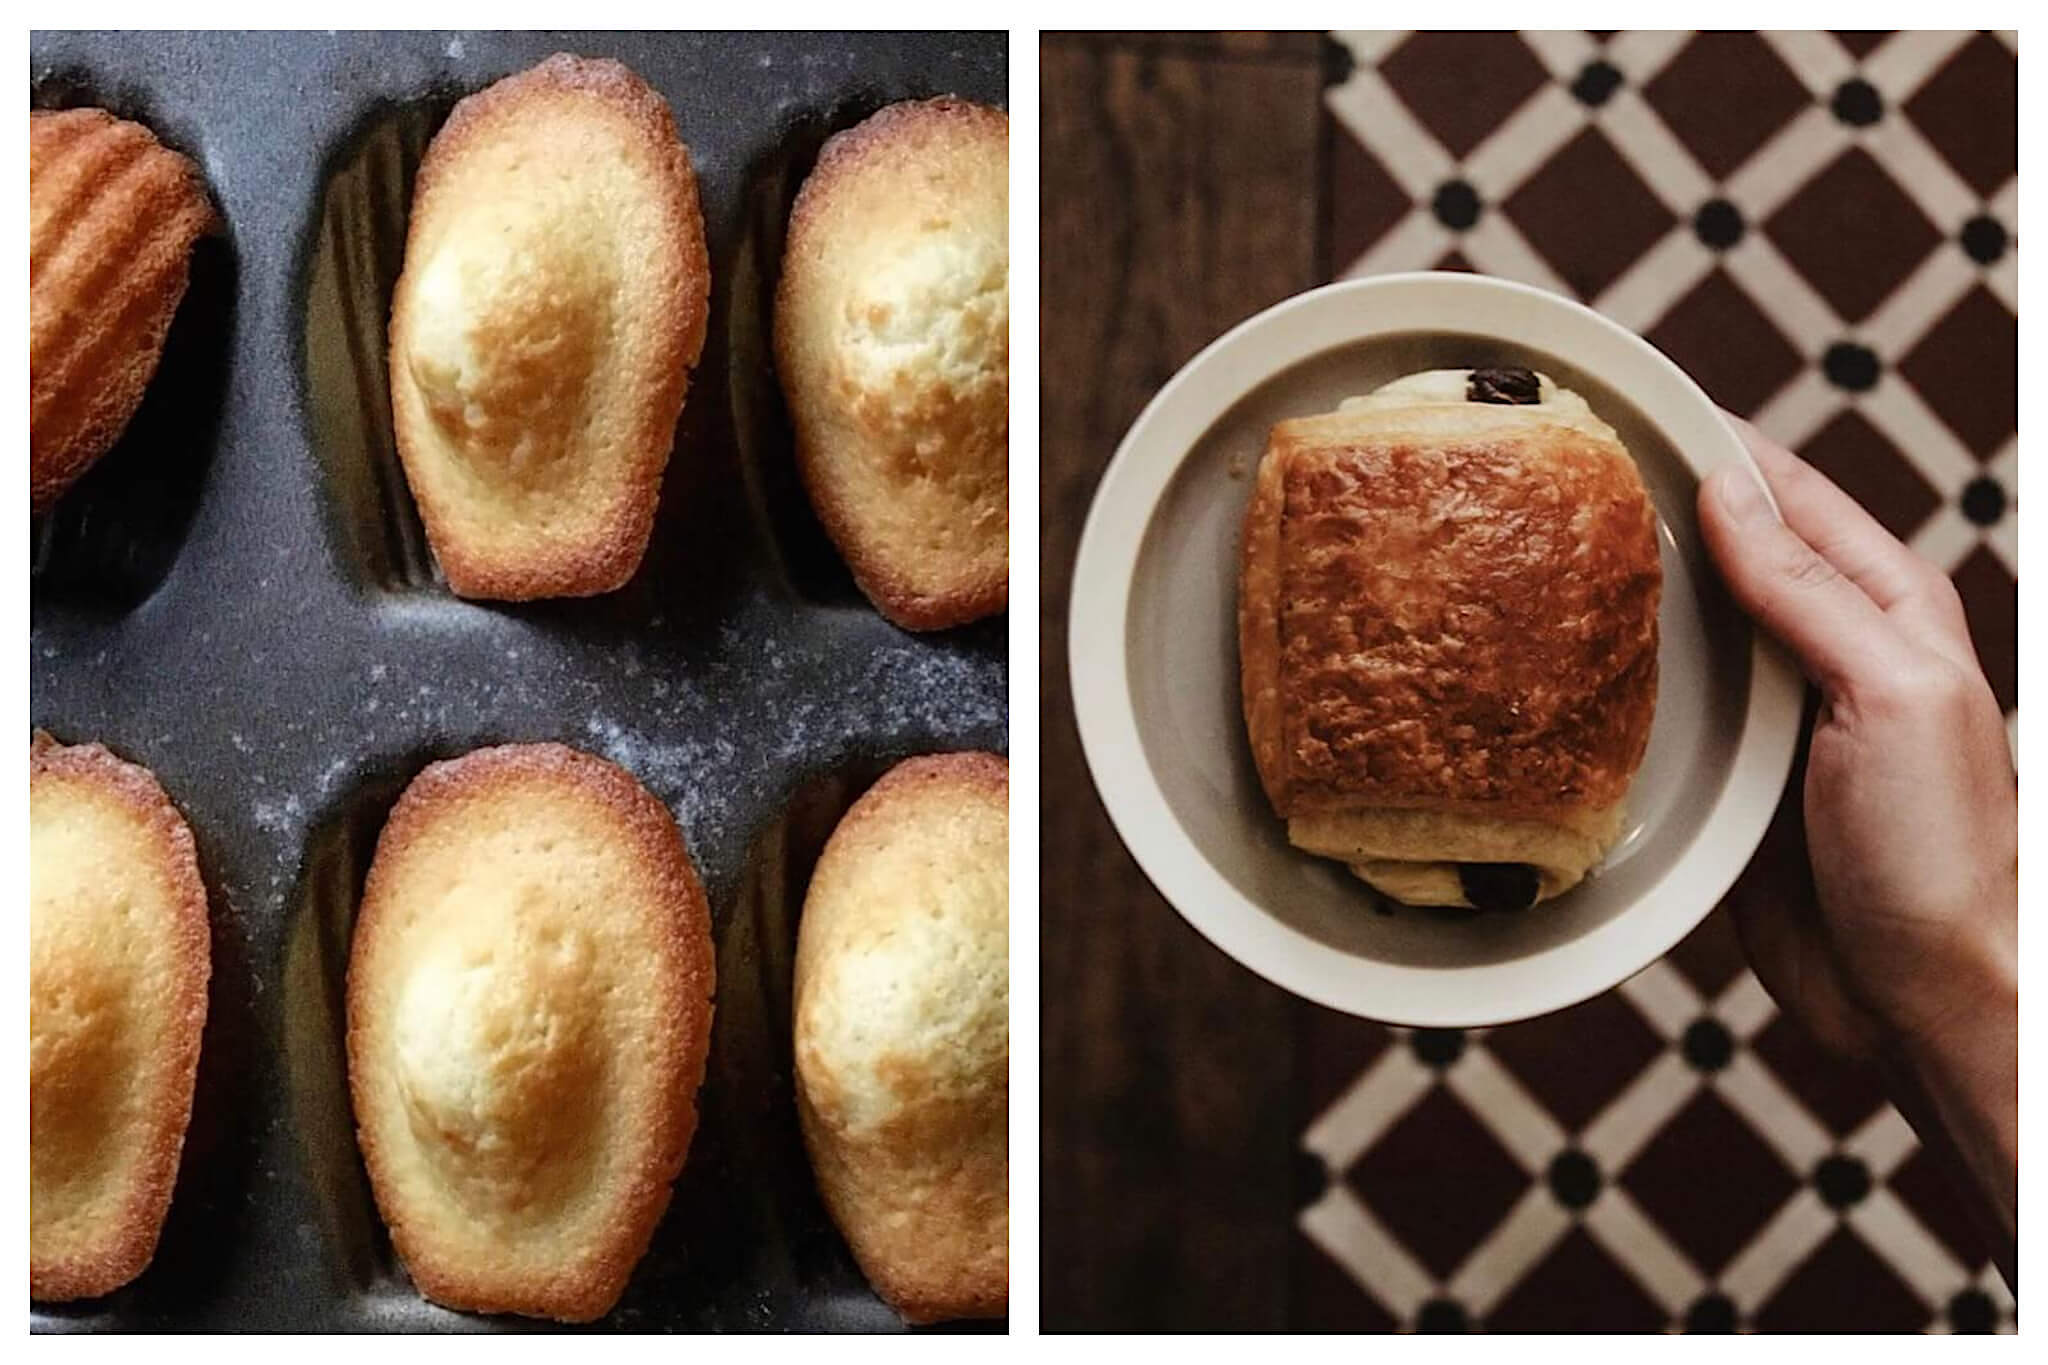 Left: Freshly baked Madeleines, light on the top and golden brown on the bottom, sit in the Madeleine cooking dish they were just baked in, Right: A person holds a small plate, atop of which is a large pain au chocolat.